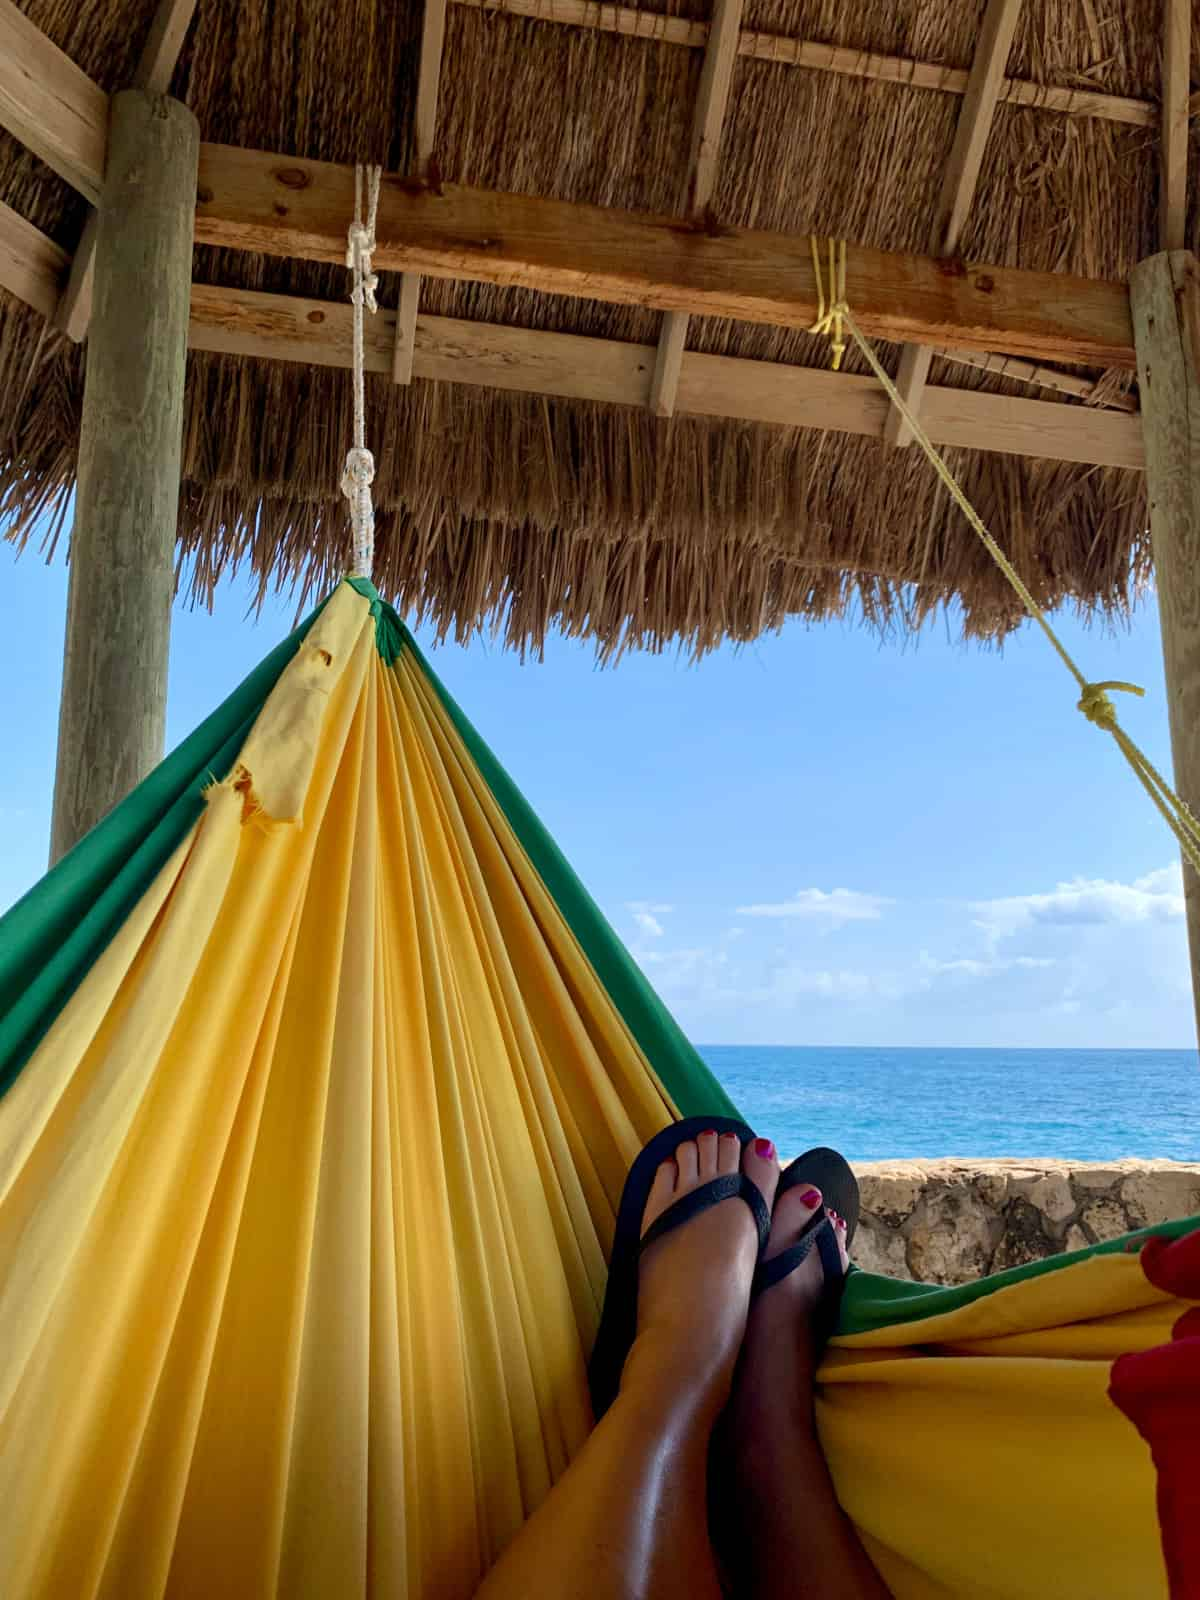 Living that hammock life in Negril, Jamaica